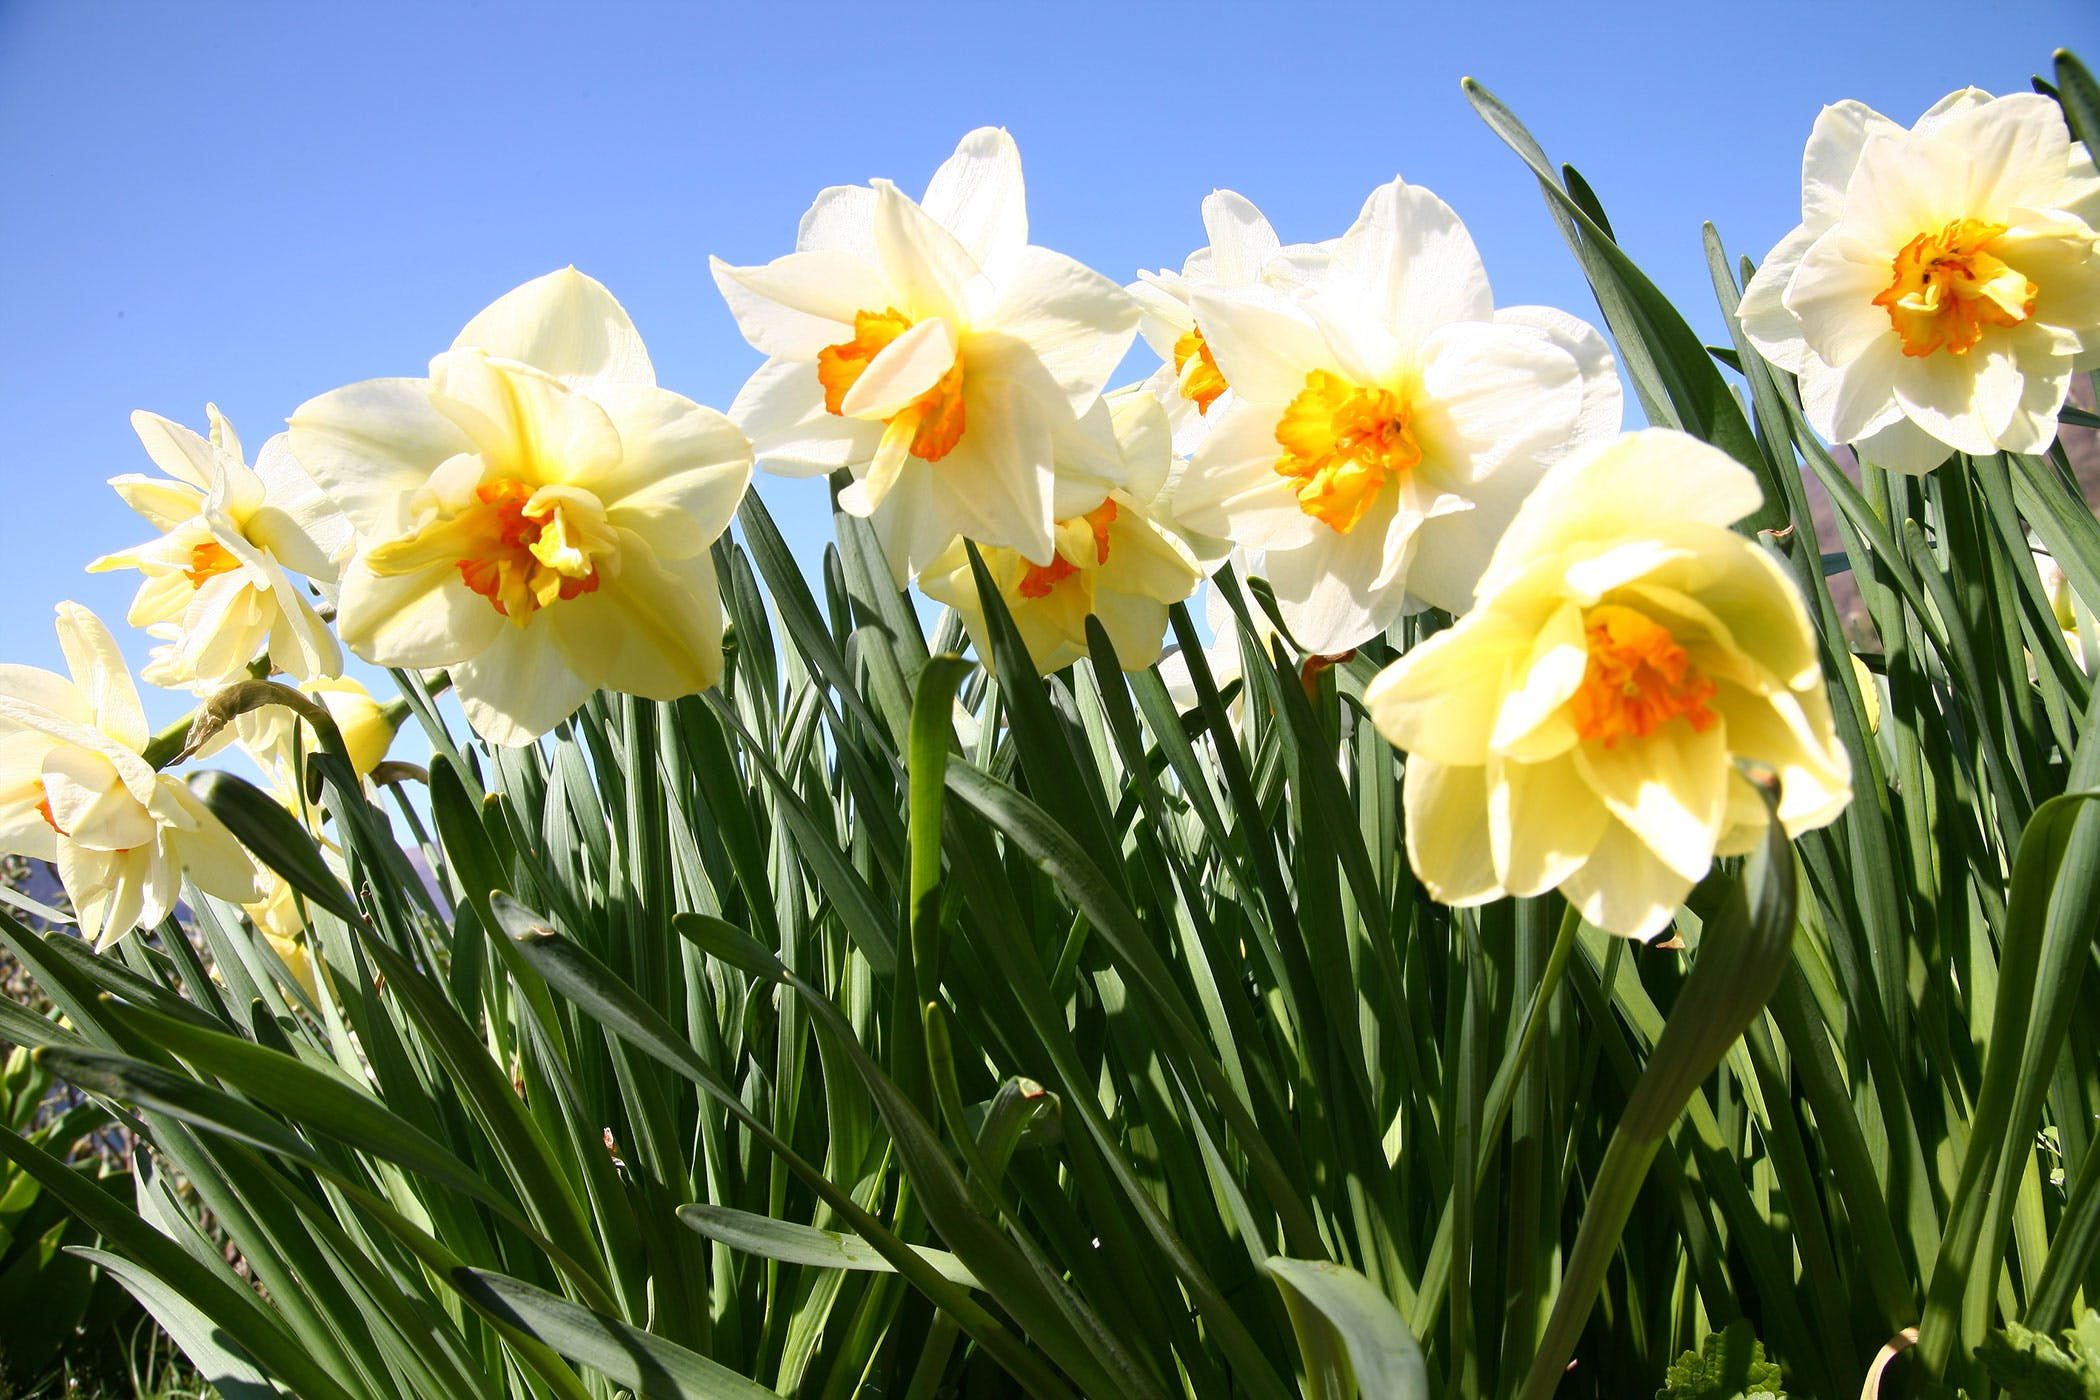 to daffodils Daffodils, also known by their botanical name narcissus, are easy and reliable spring-flowering bulbs they multiply quickly and return to bloom again each spring, year after year.